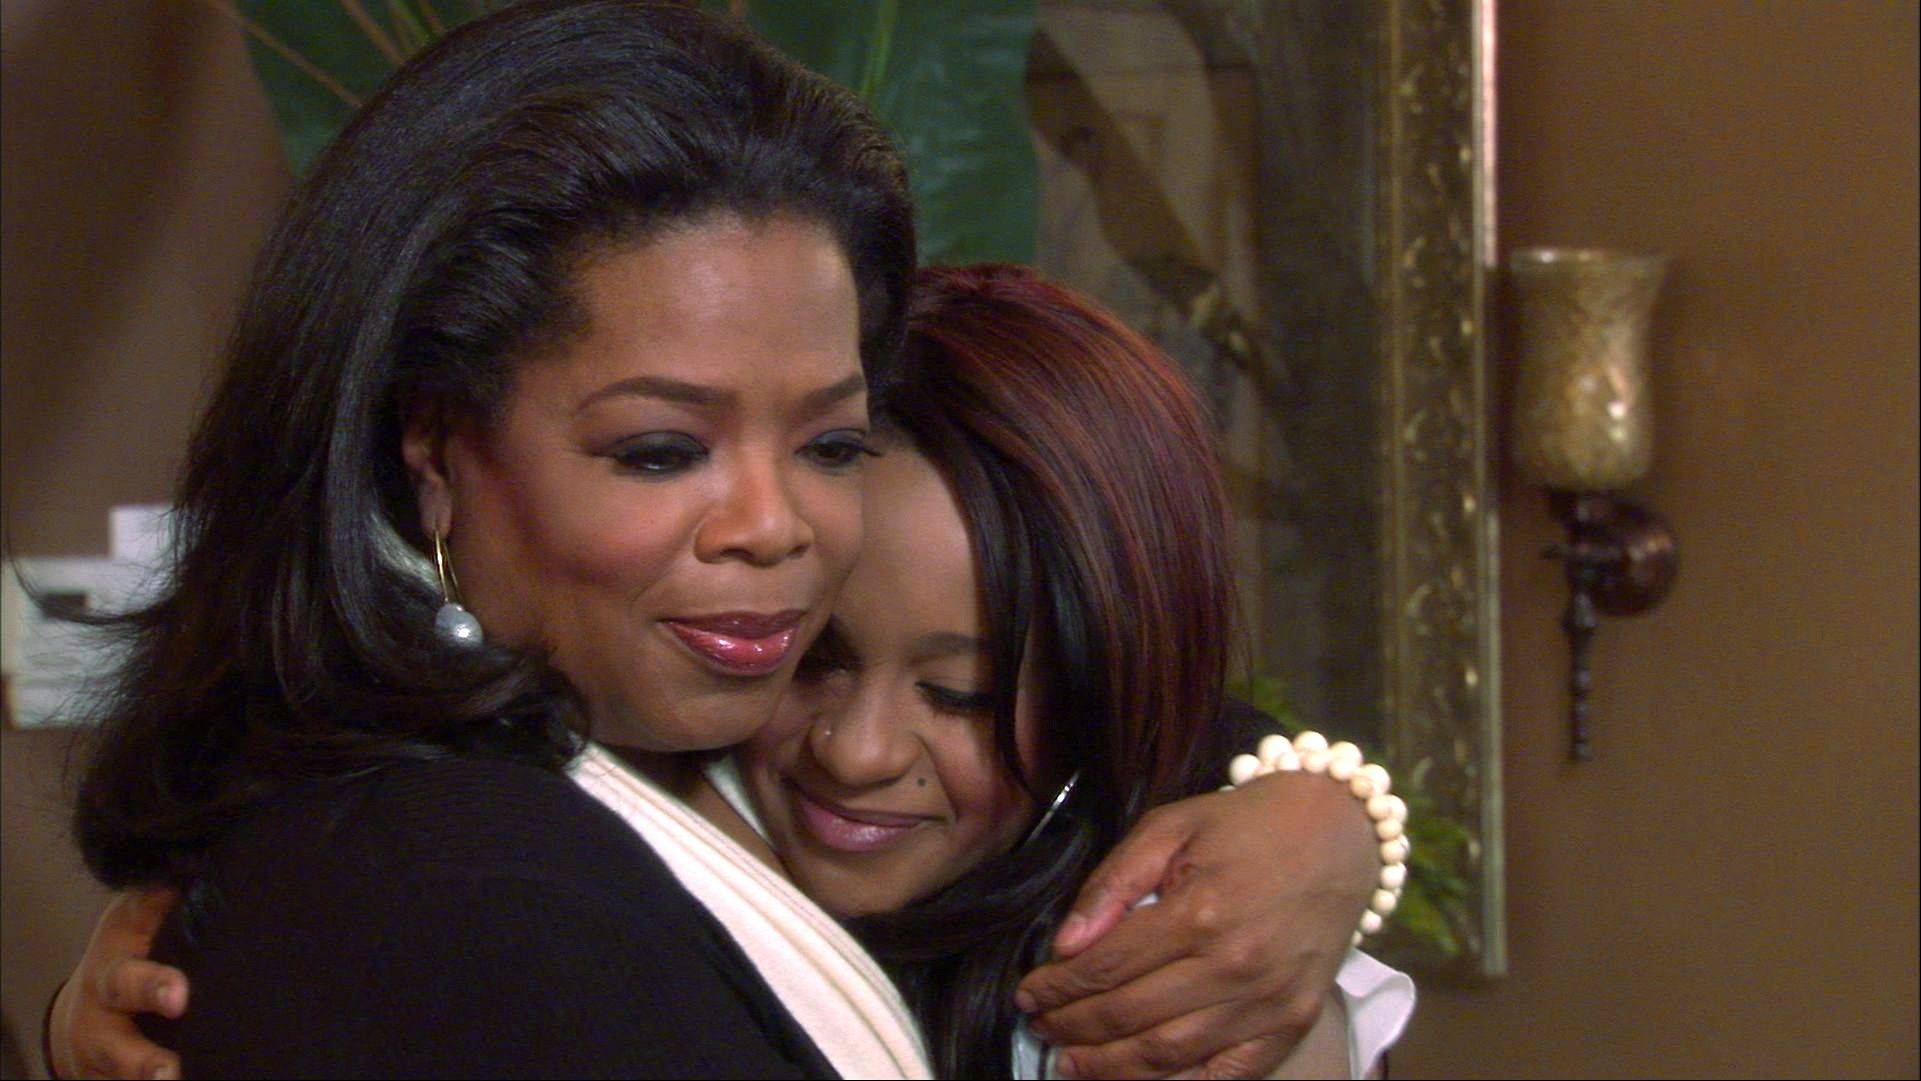 Host Oprah Winfrey embraces Bobbi Kristina, daughter of the late singer Whitney Houston during an interview in Atlanta, Ga.